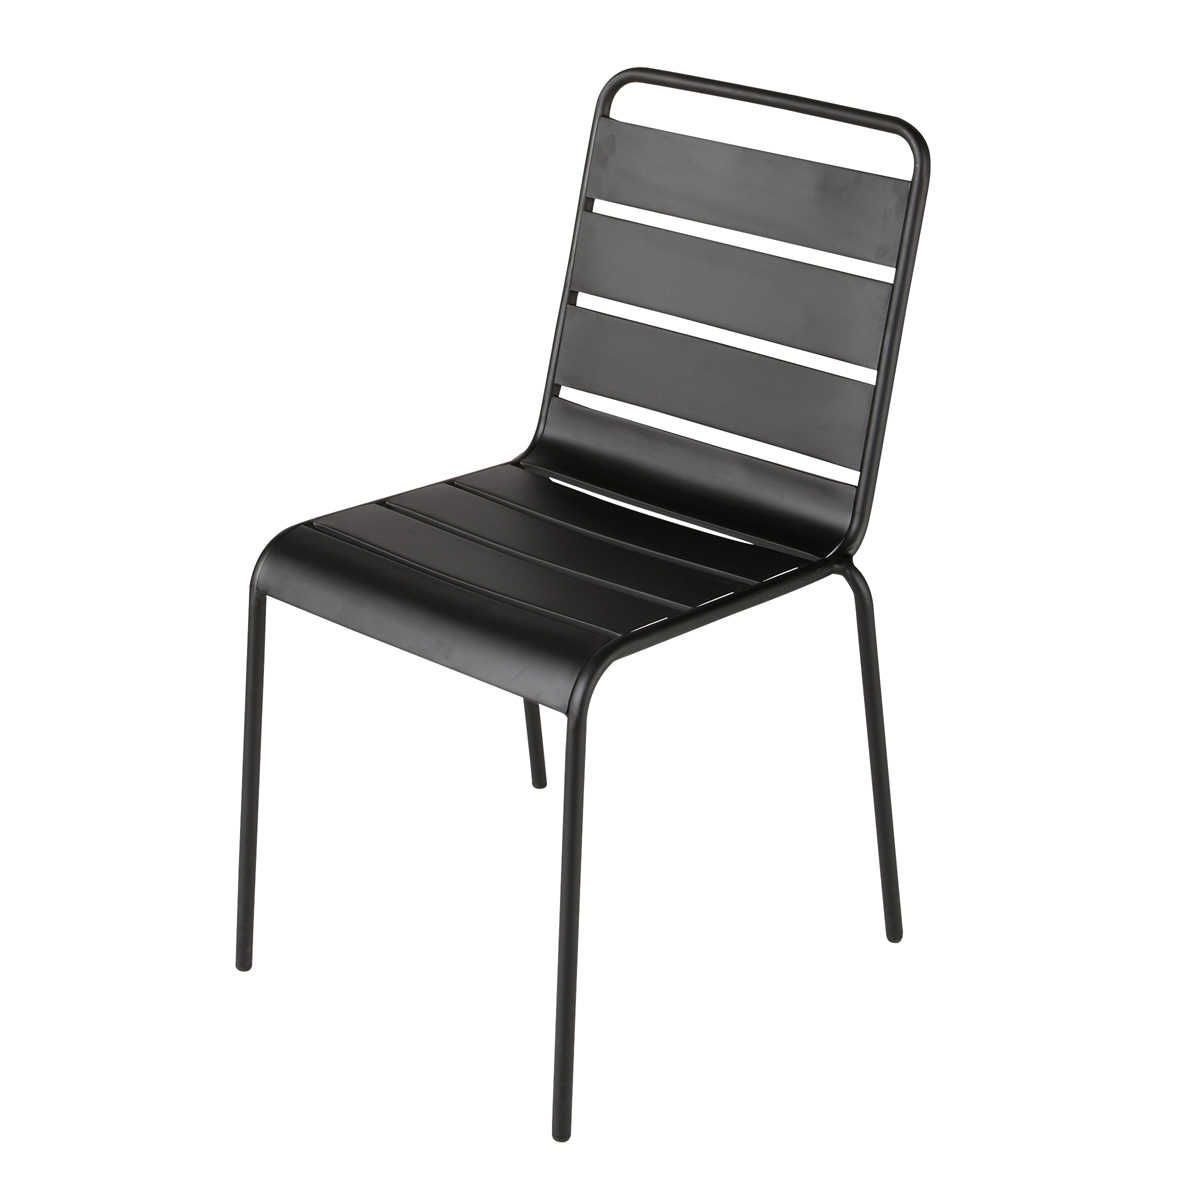 Charmant Metal Garden Chair In Black Batignoles